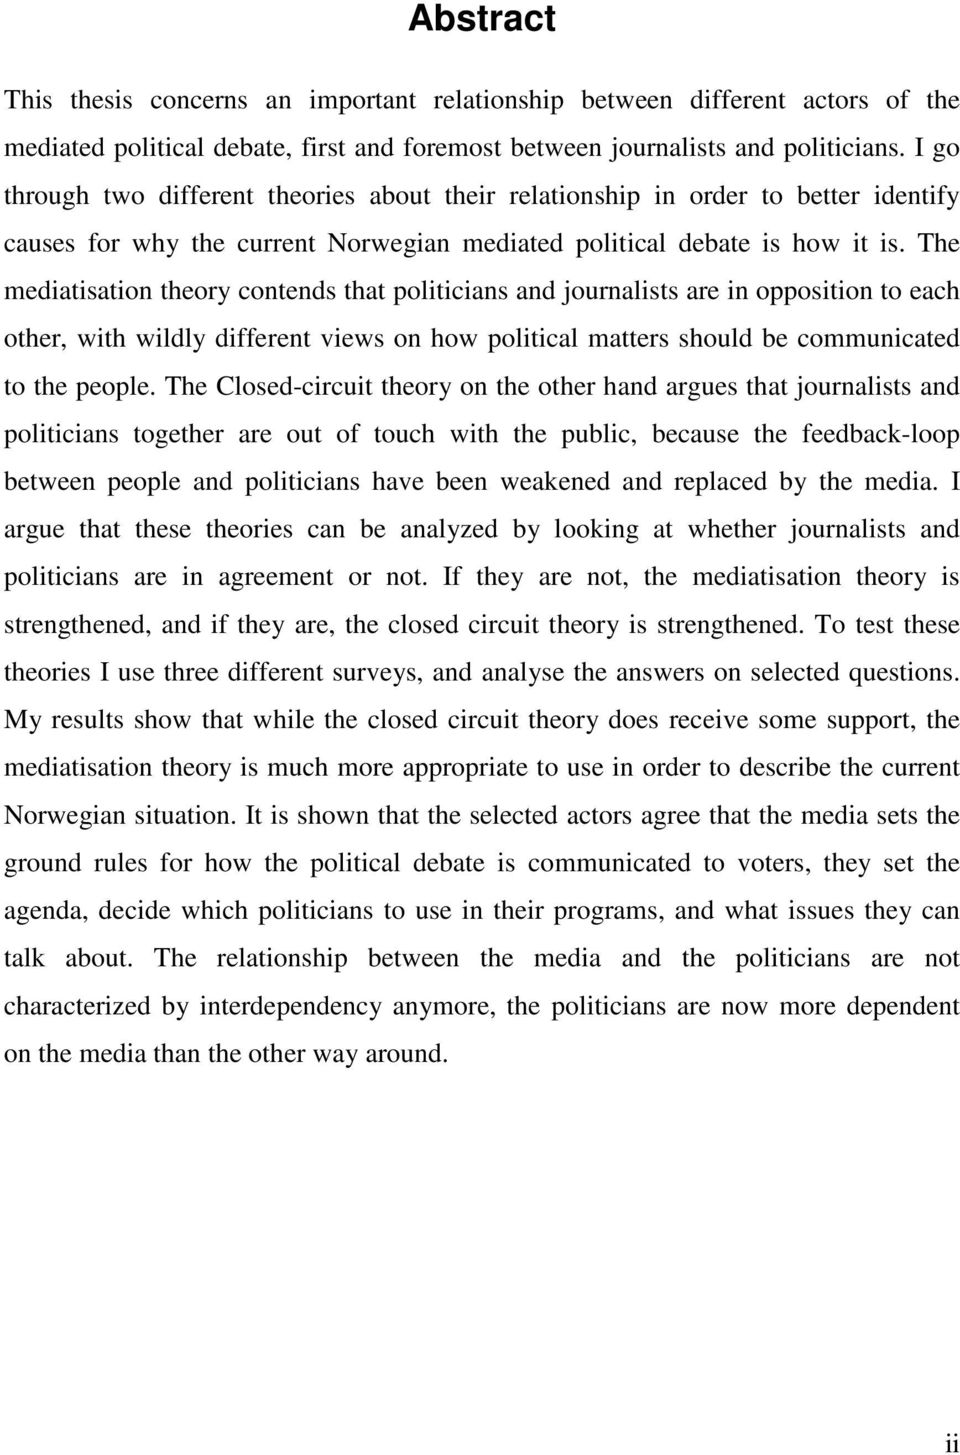 The mediatisation theory contends that politicians and journalists are in opposition to each other, with wildly different views on how political matters should be communicated to the people.